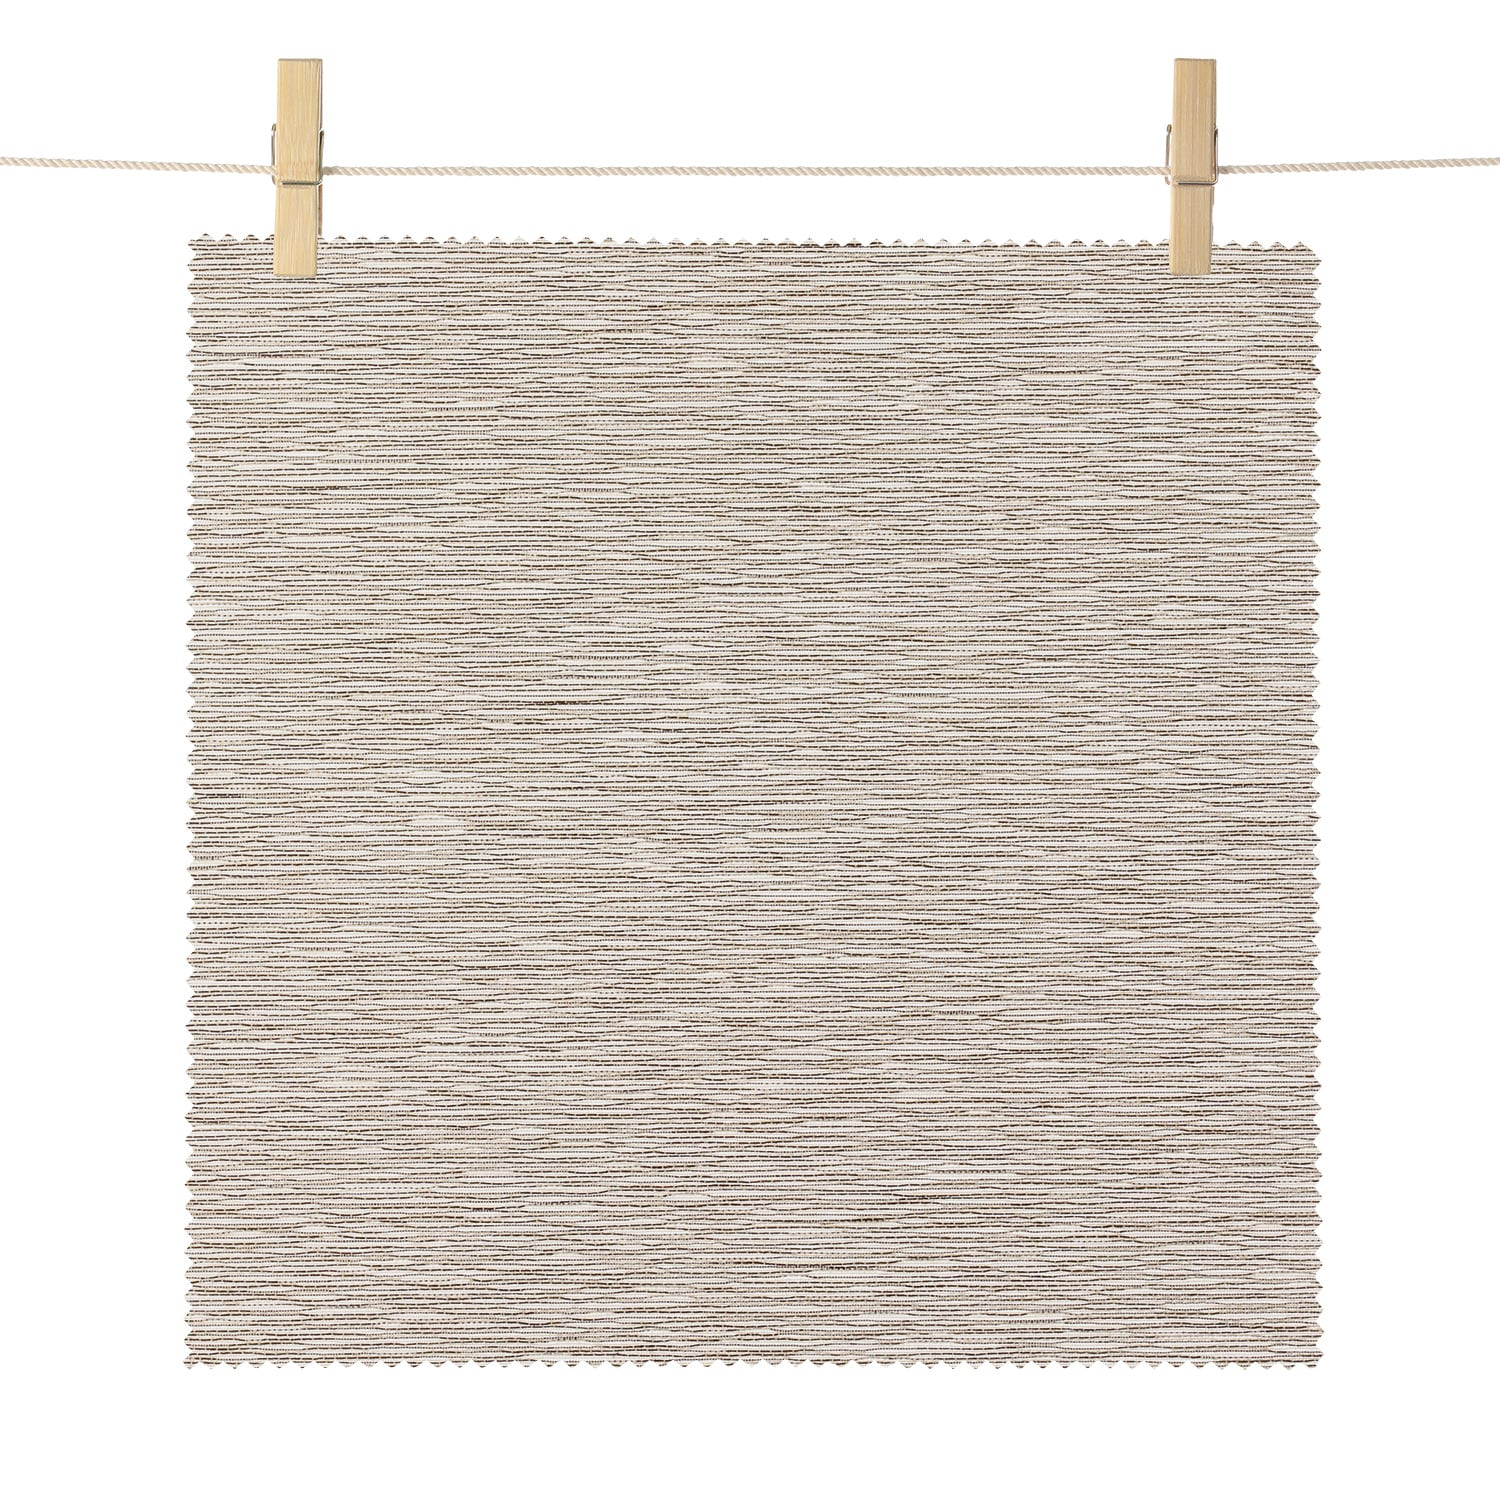 Portola Brown Faille Rib Textured Light Filtering Roller Shade Swatch